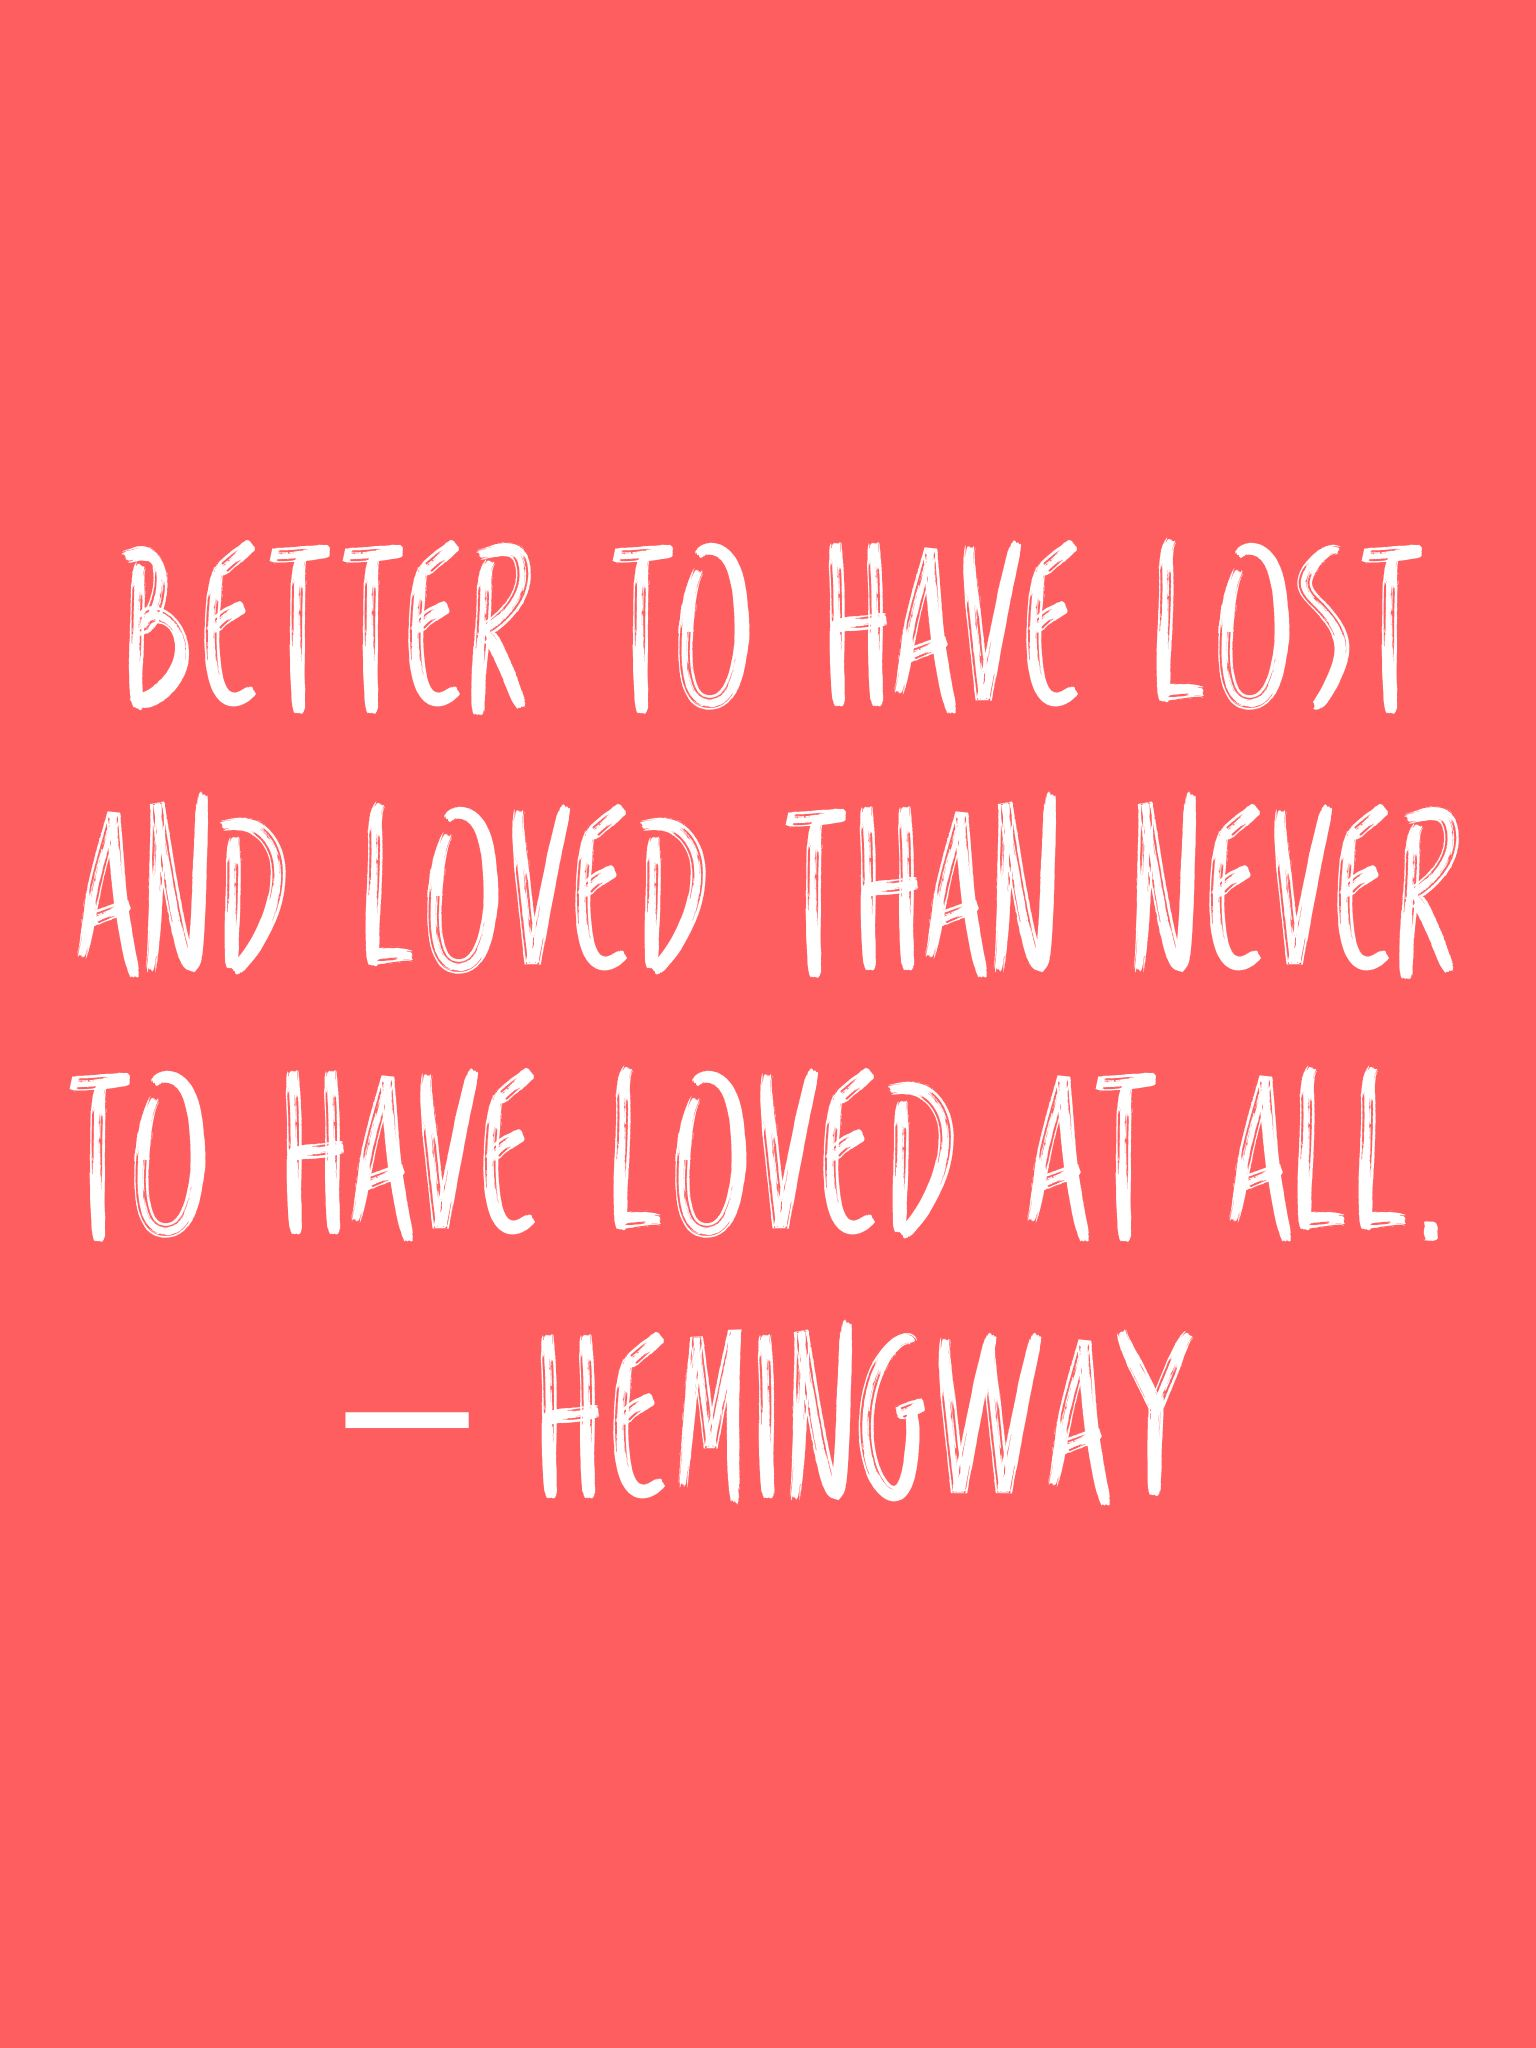 Love Quotes App Inspiration Better To Have Lost And Loved Than Never To Have Loved At All